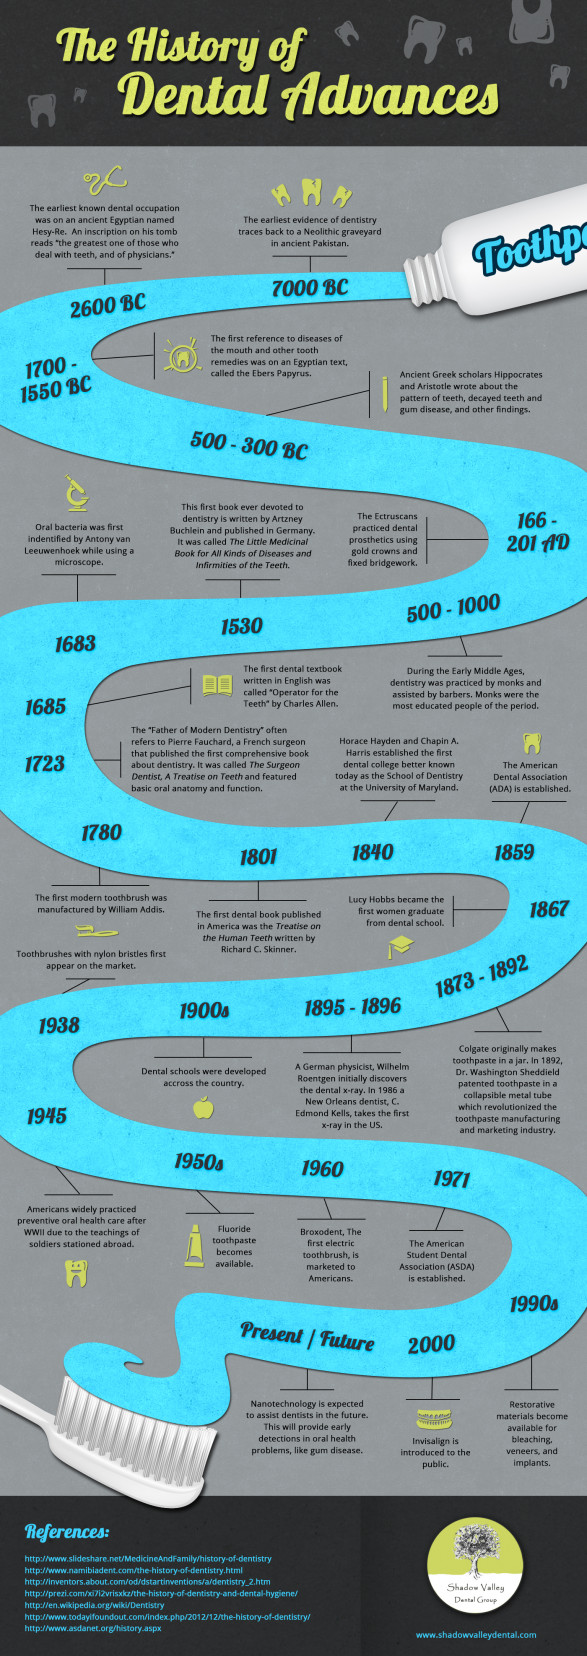 The History of Dental Advances